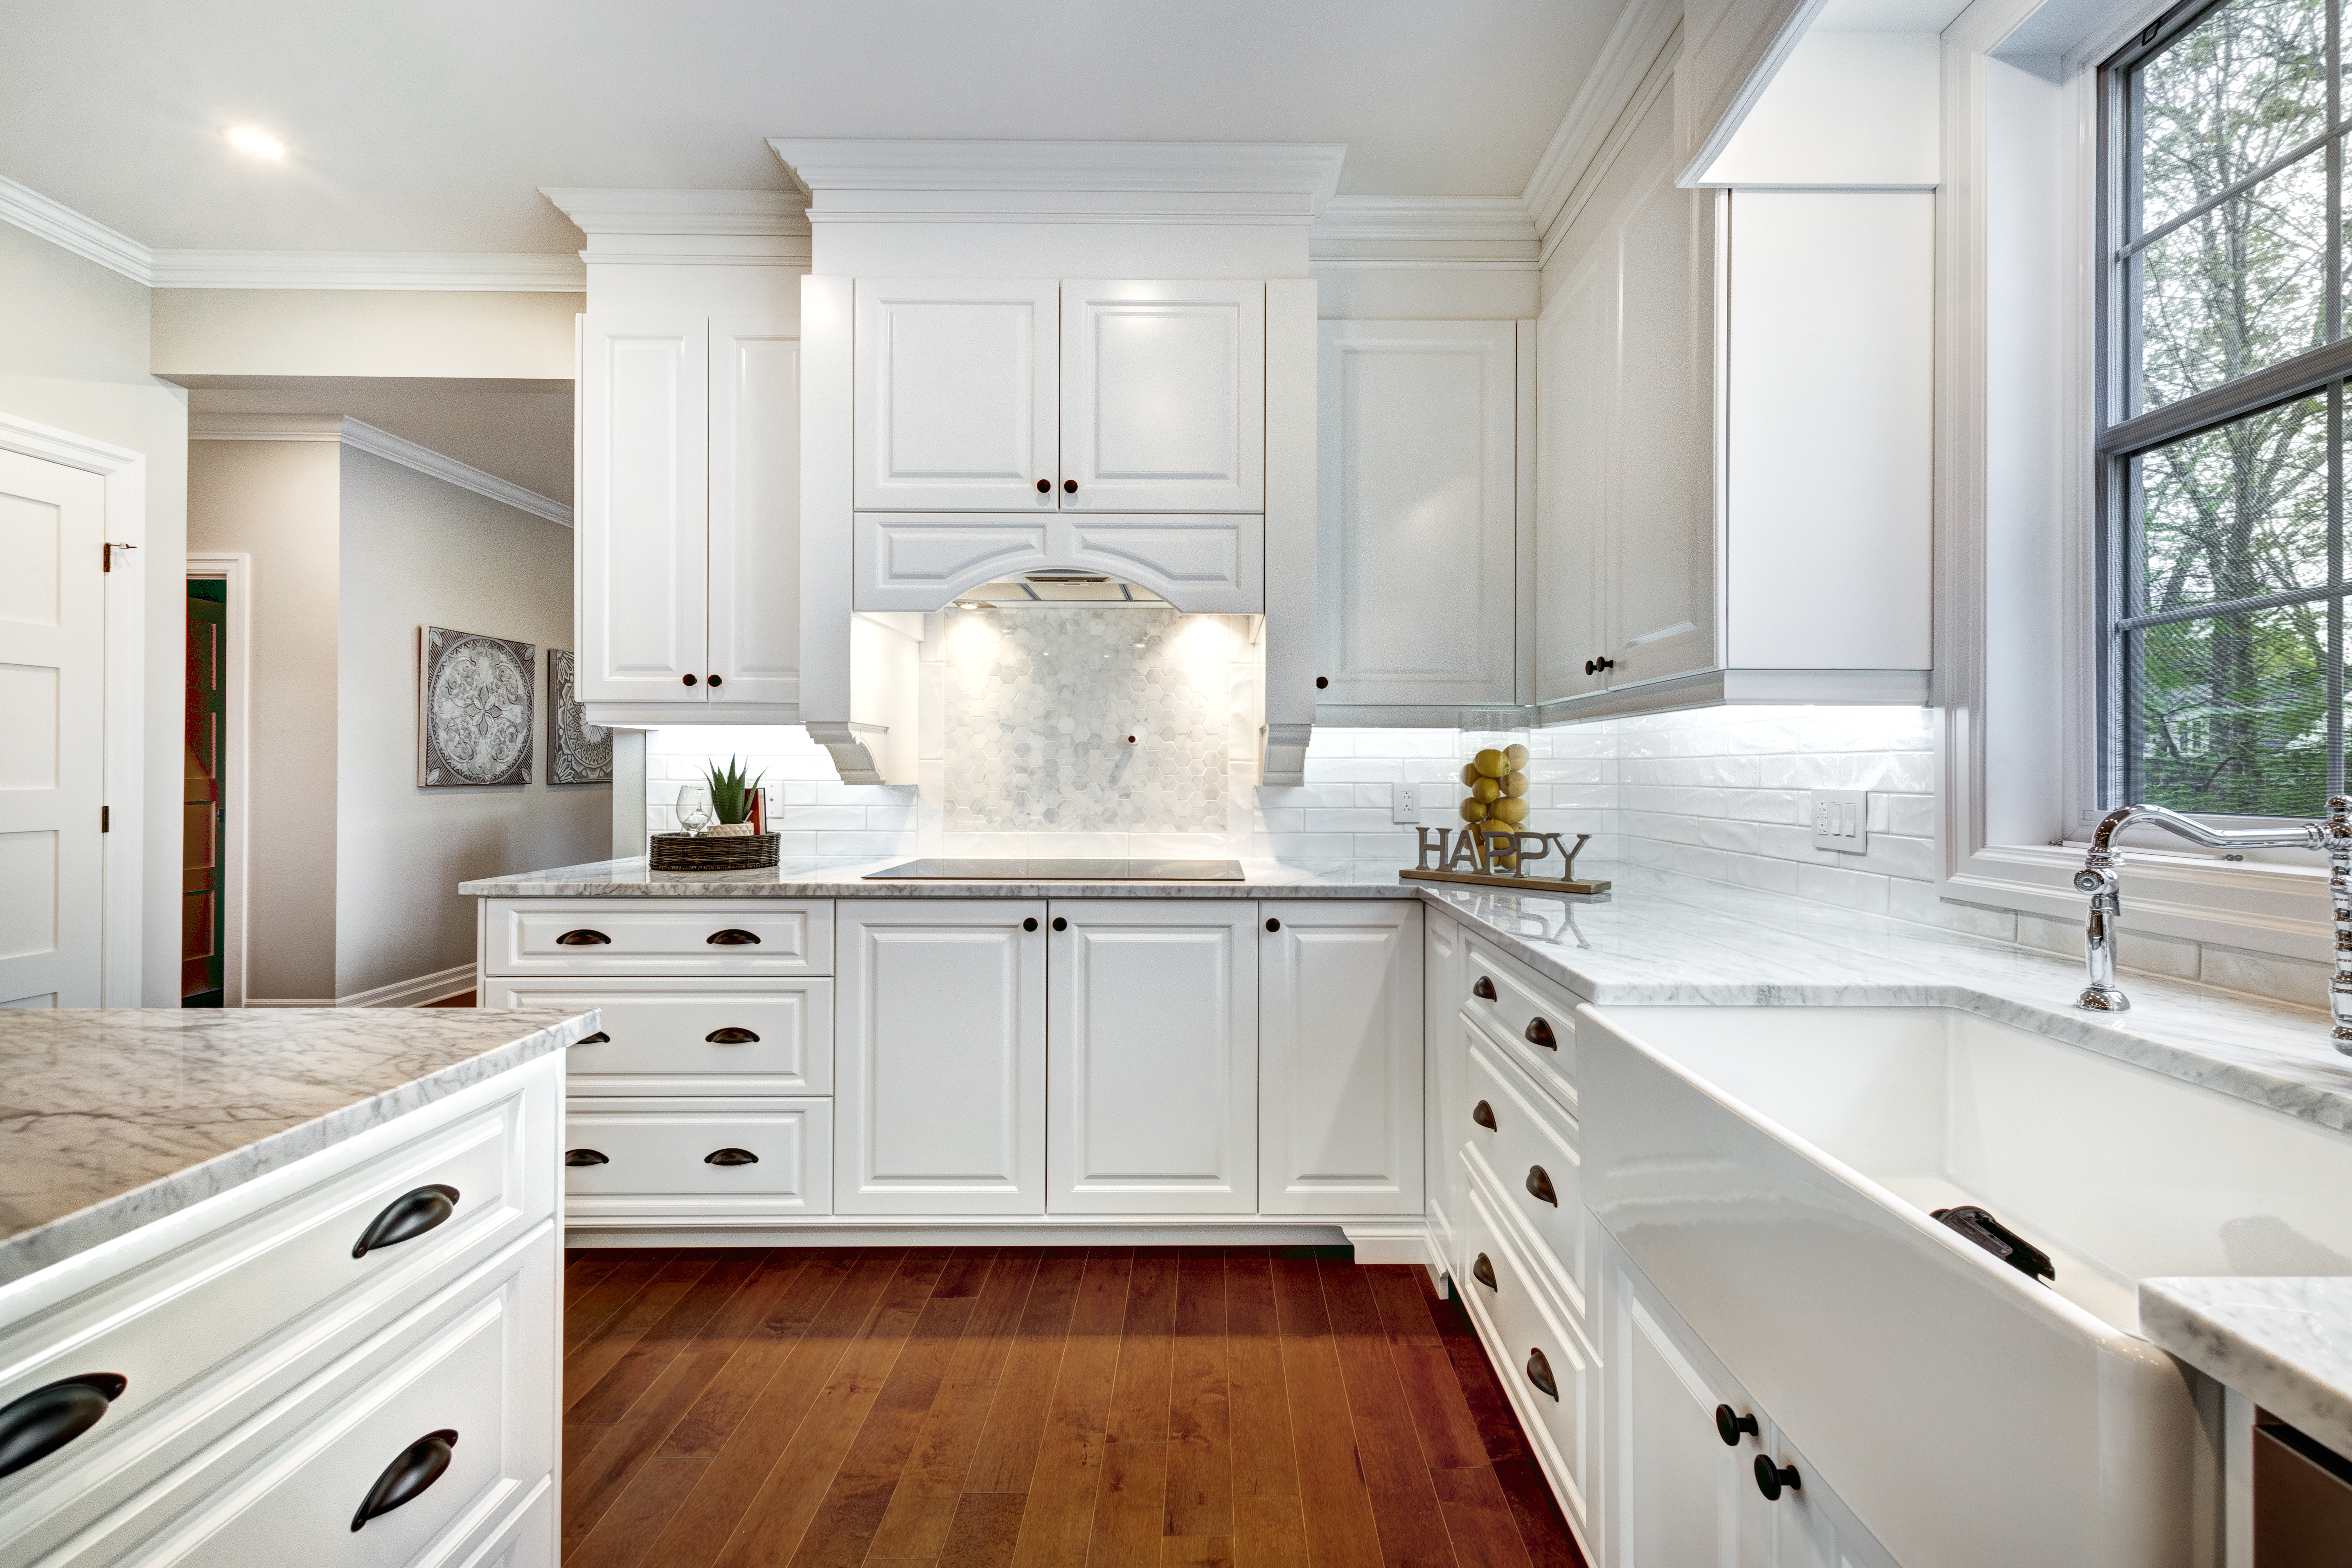 How To Make Oak Cabinets Look Like French Country Hunker